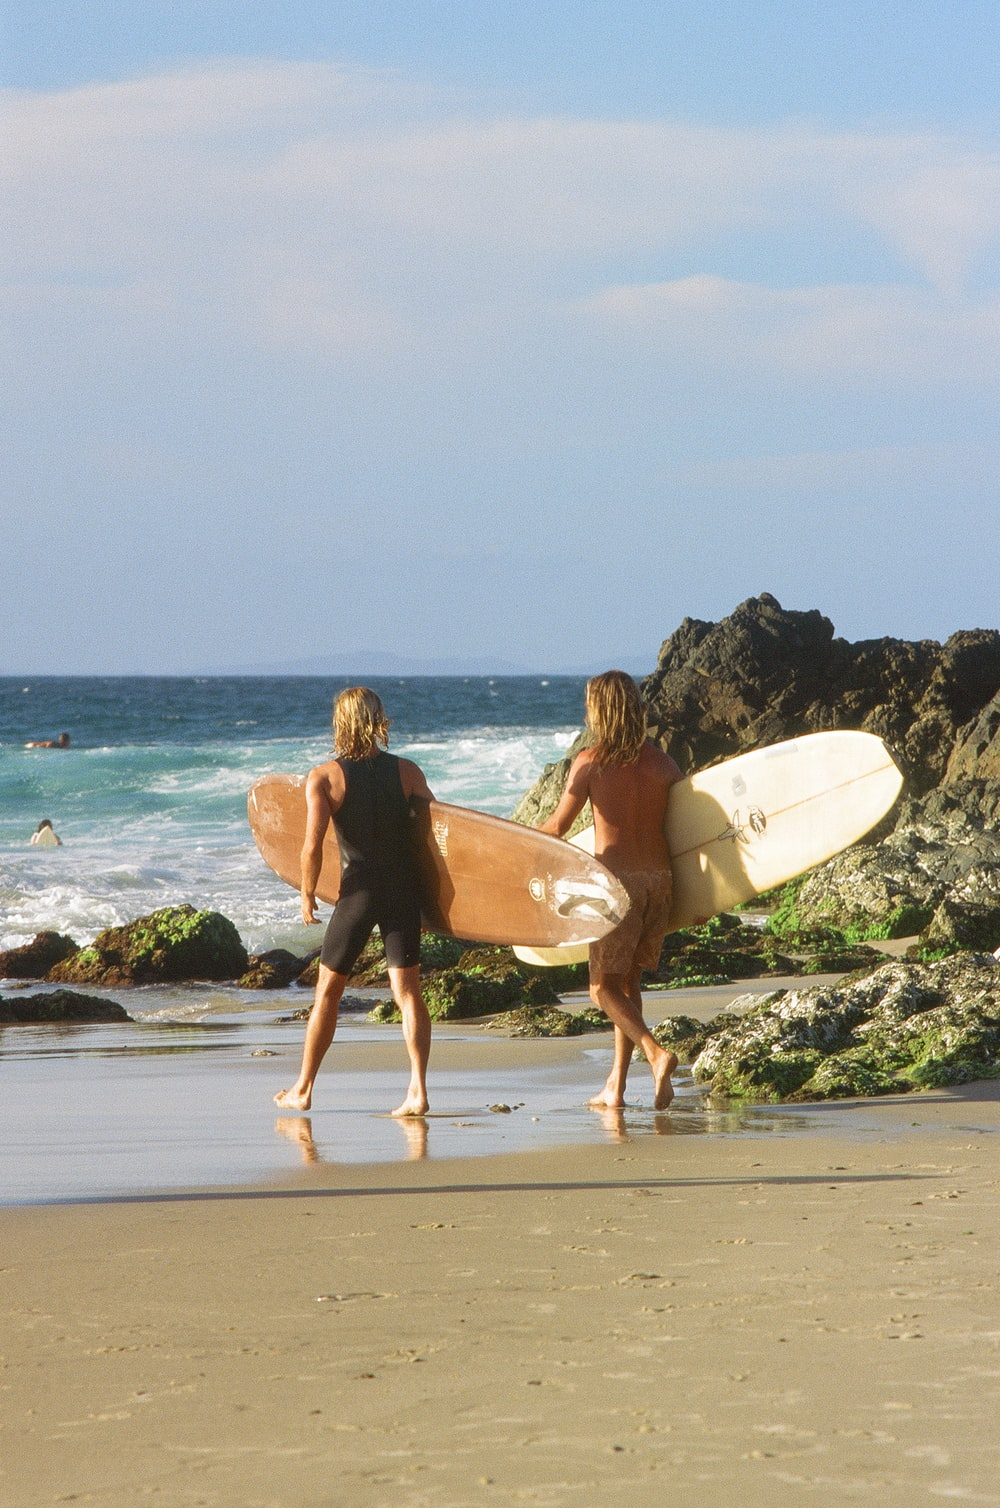 man and woman holding surfboard